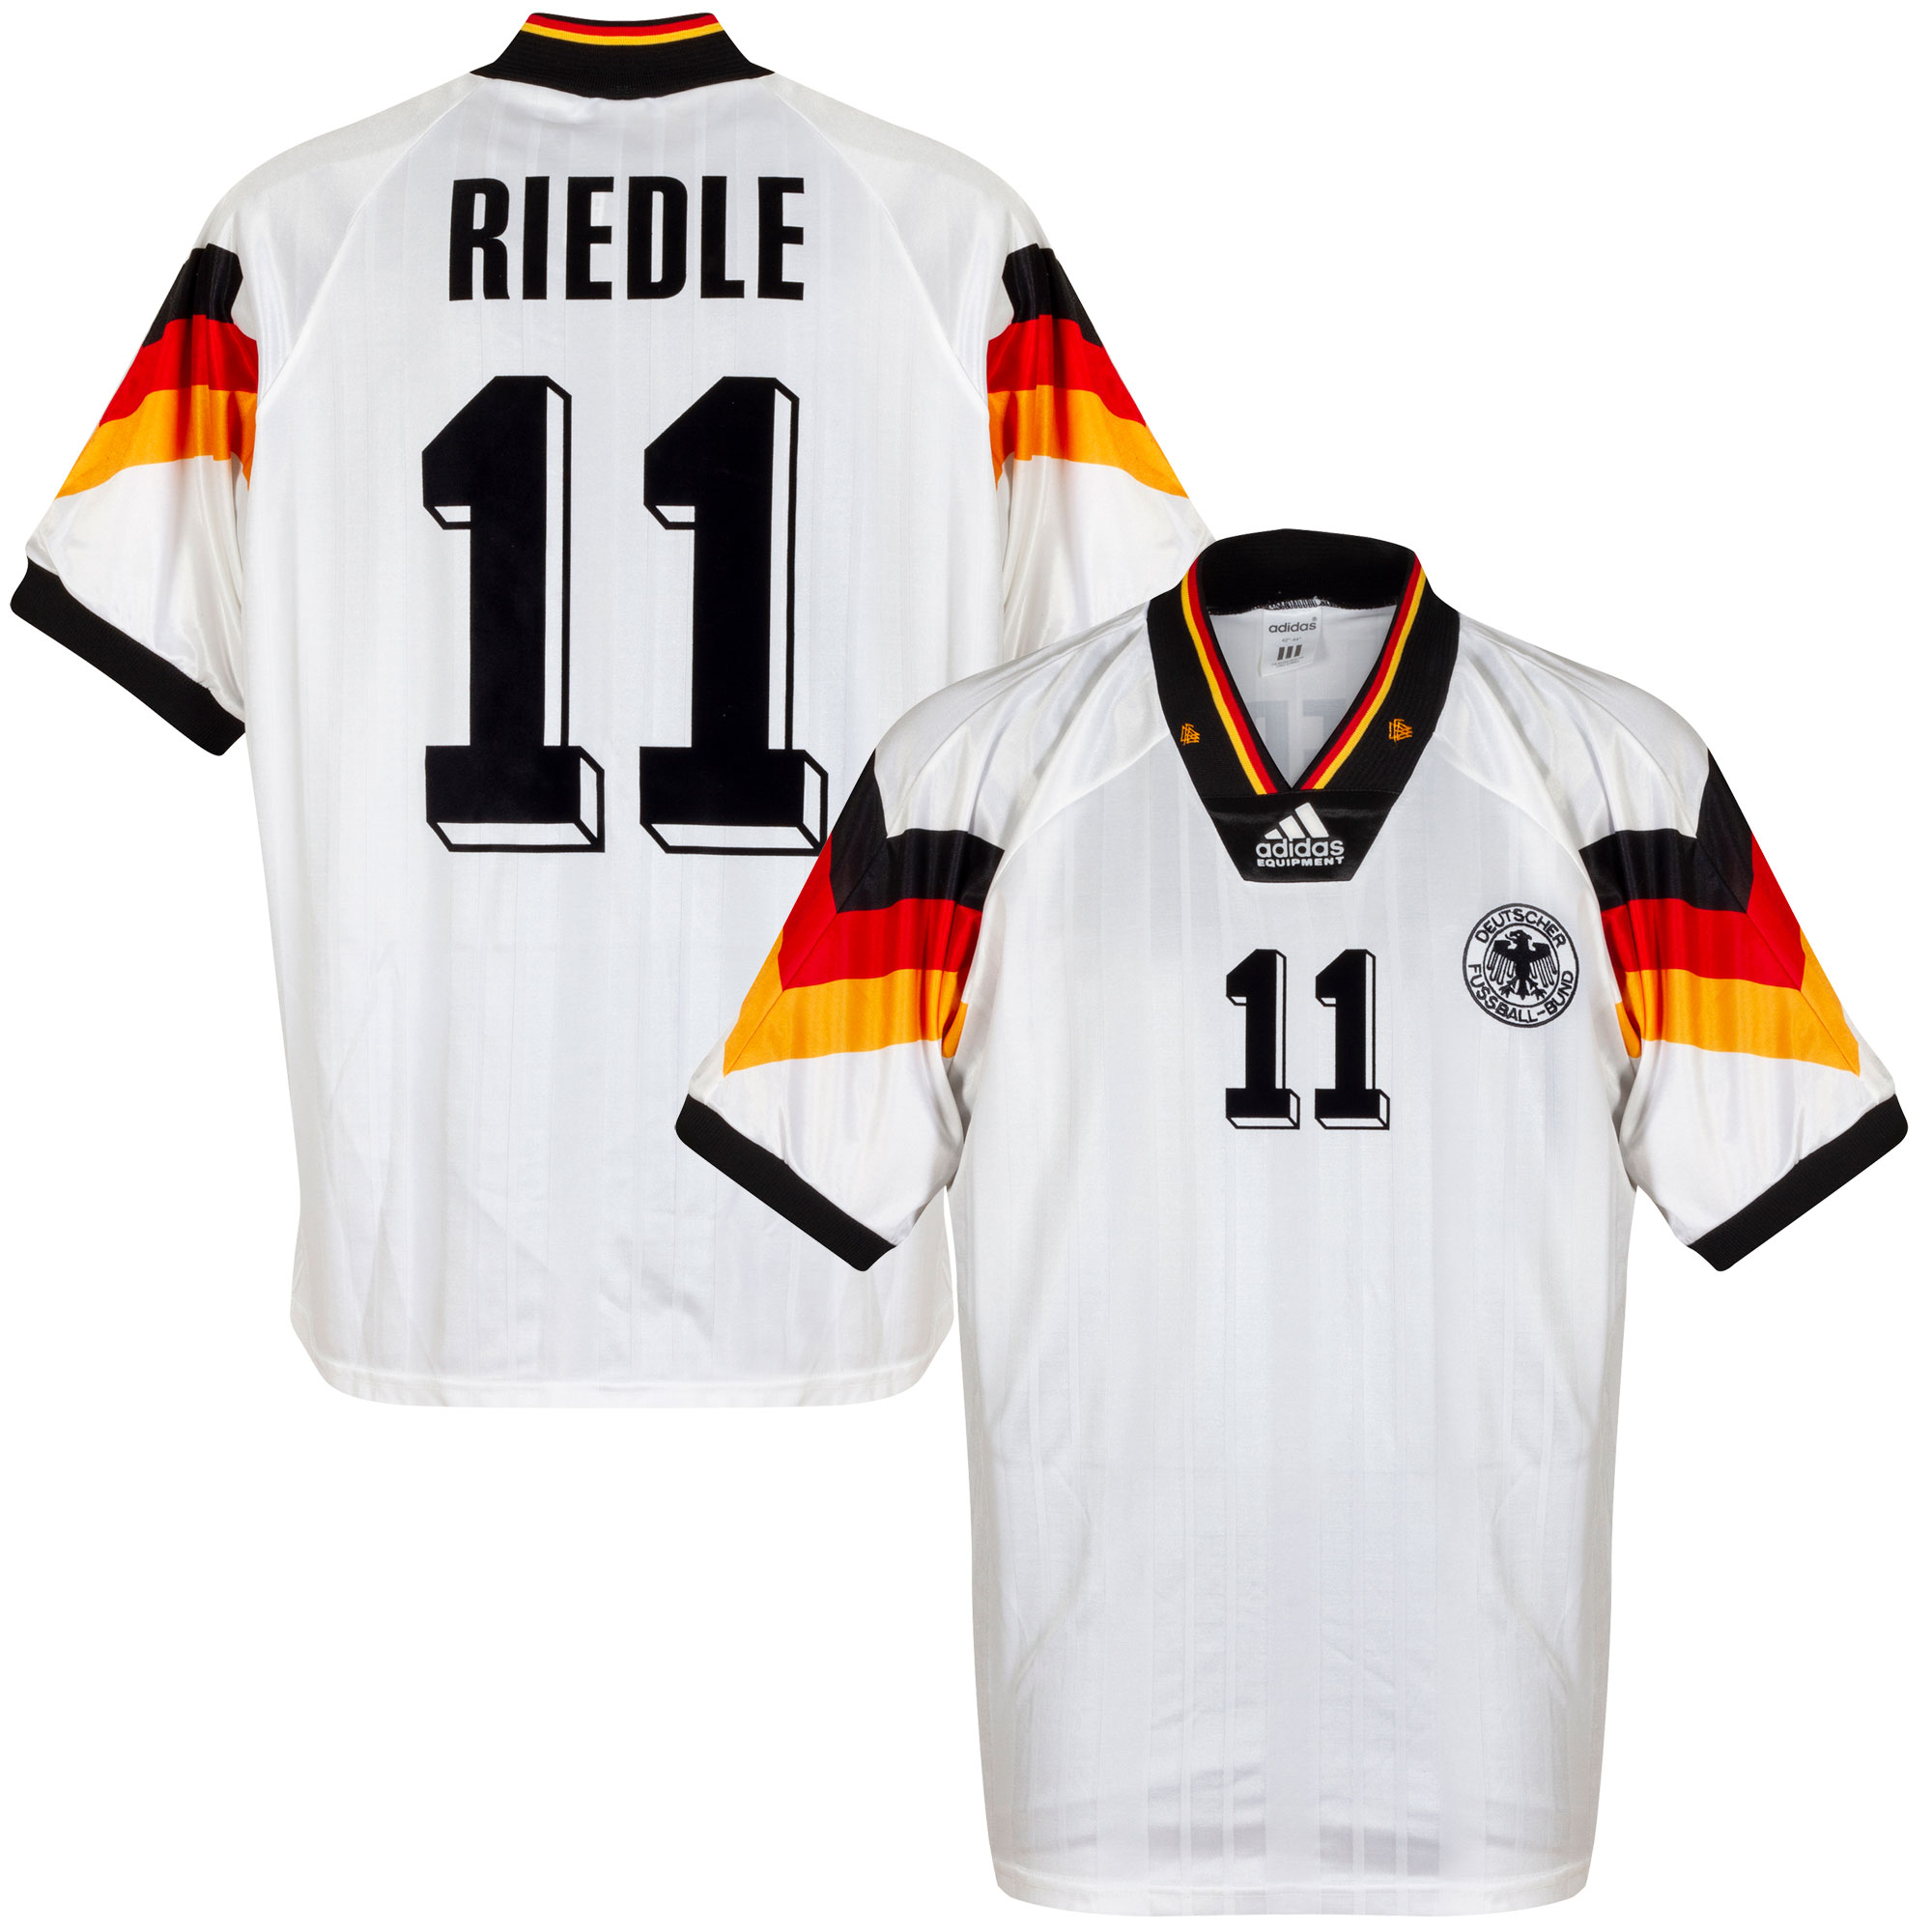 adidas Germany 1992-1994 Home Riedle 11 Shirt - USED Condition (Great) - Size S